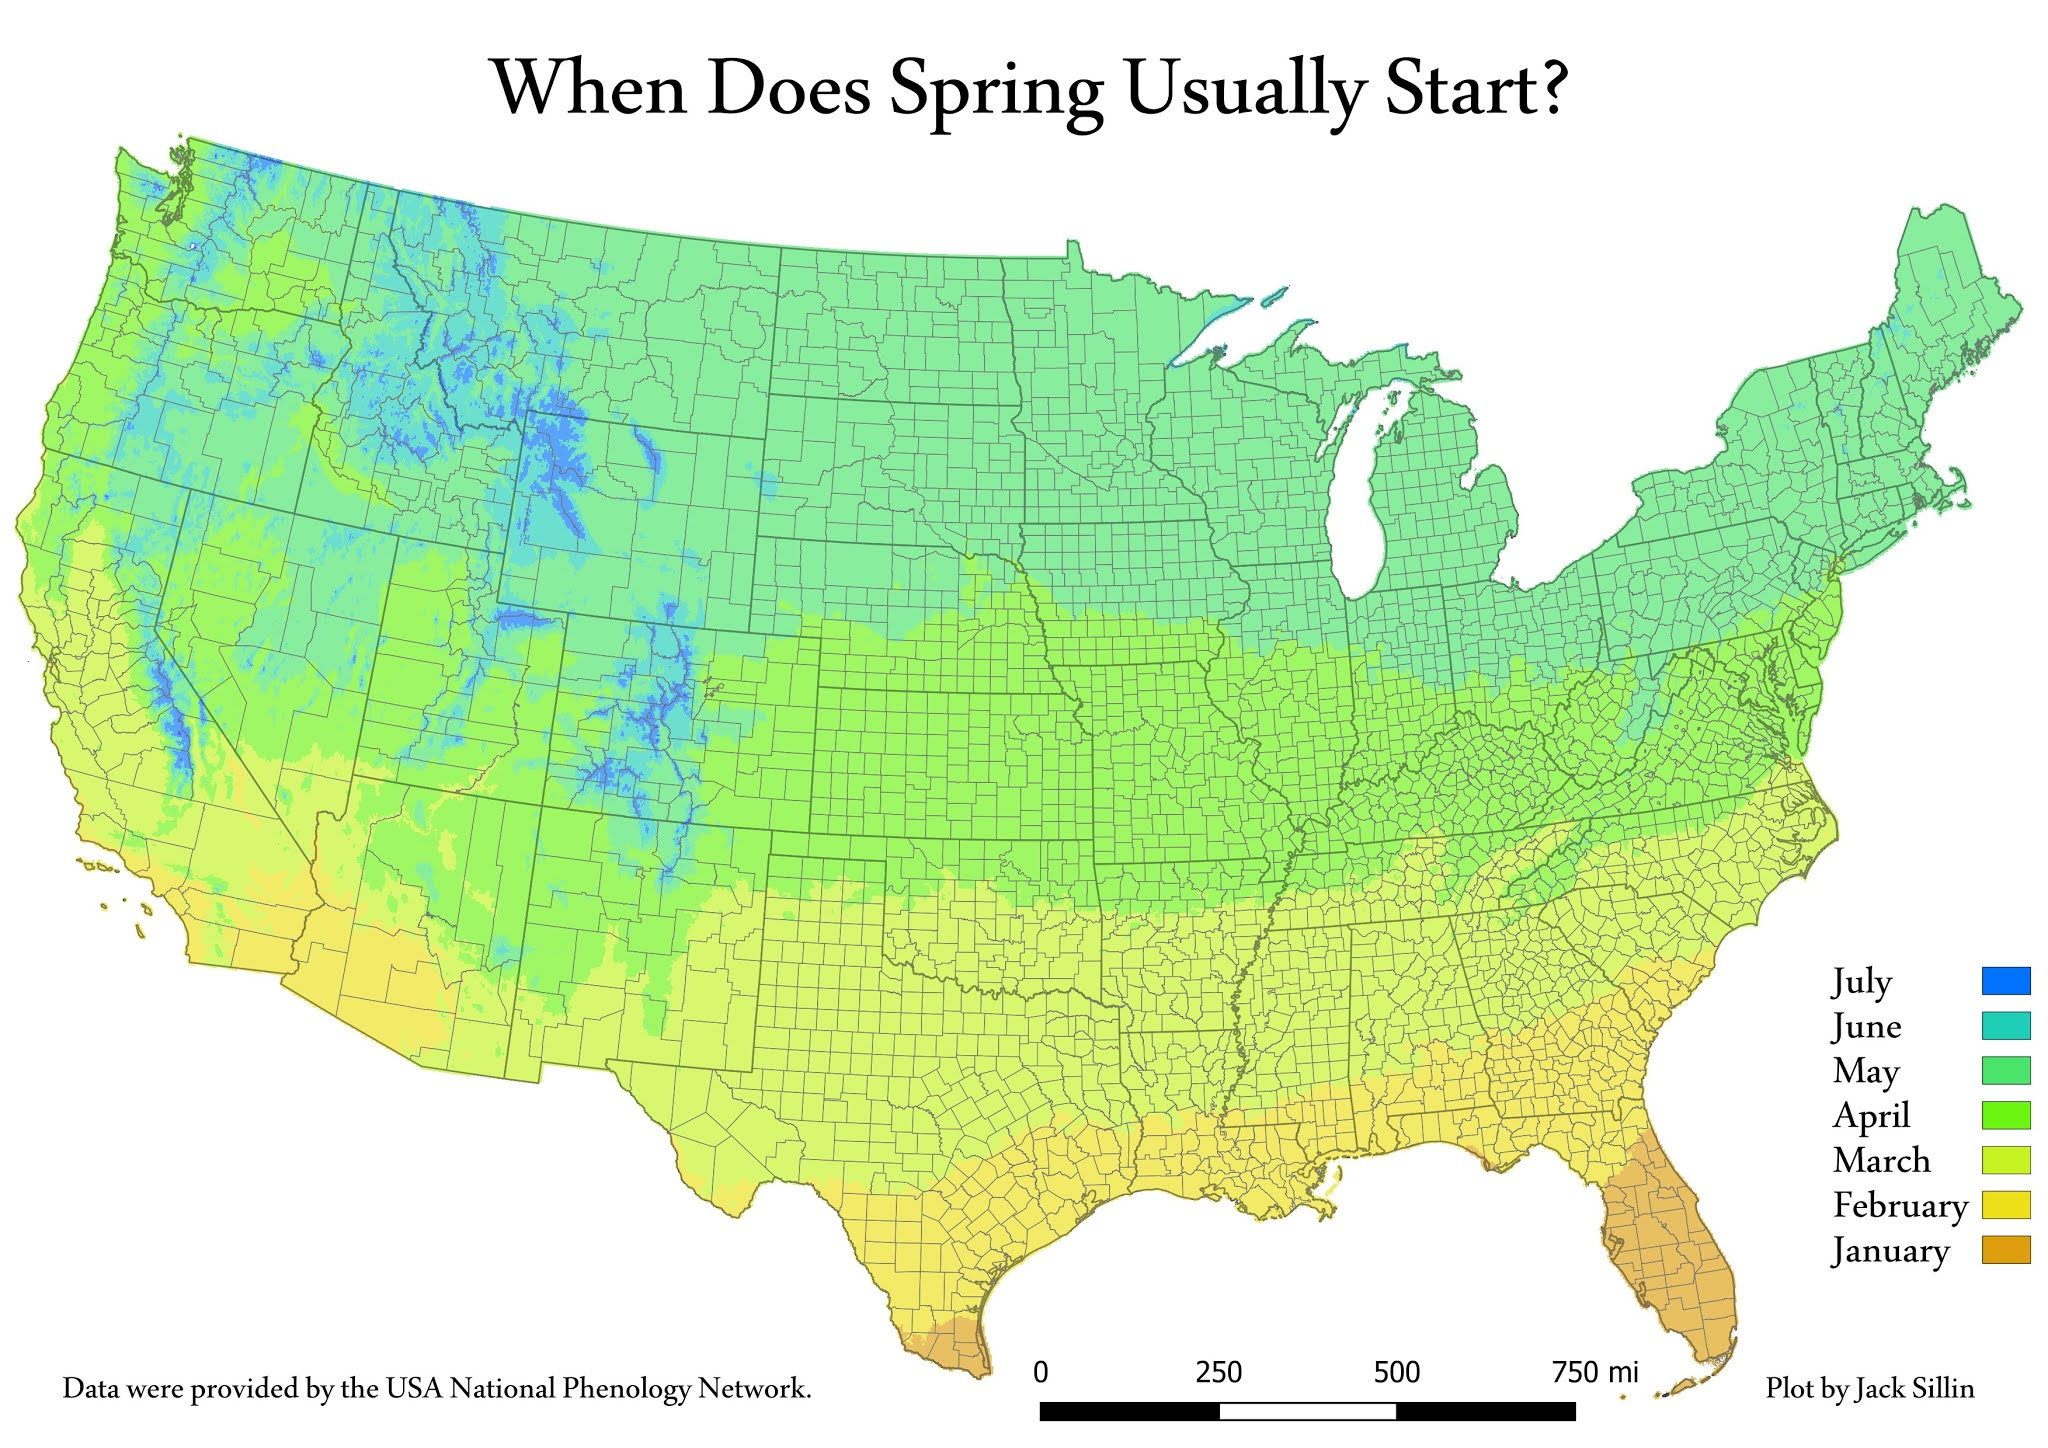 Spring in the United States